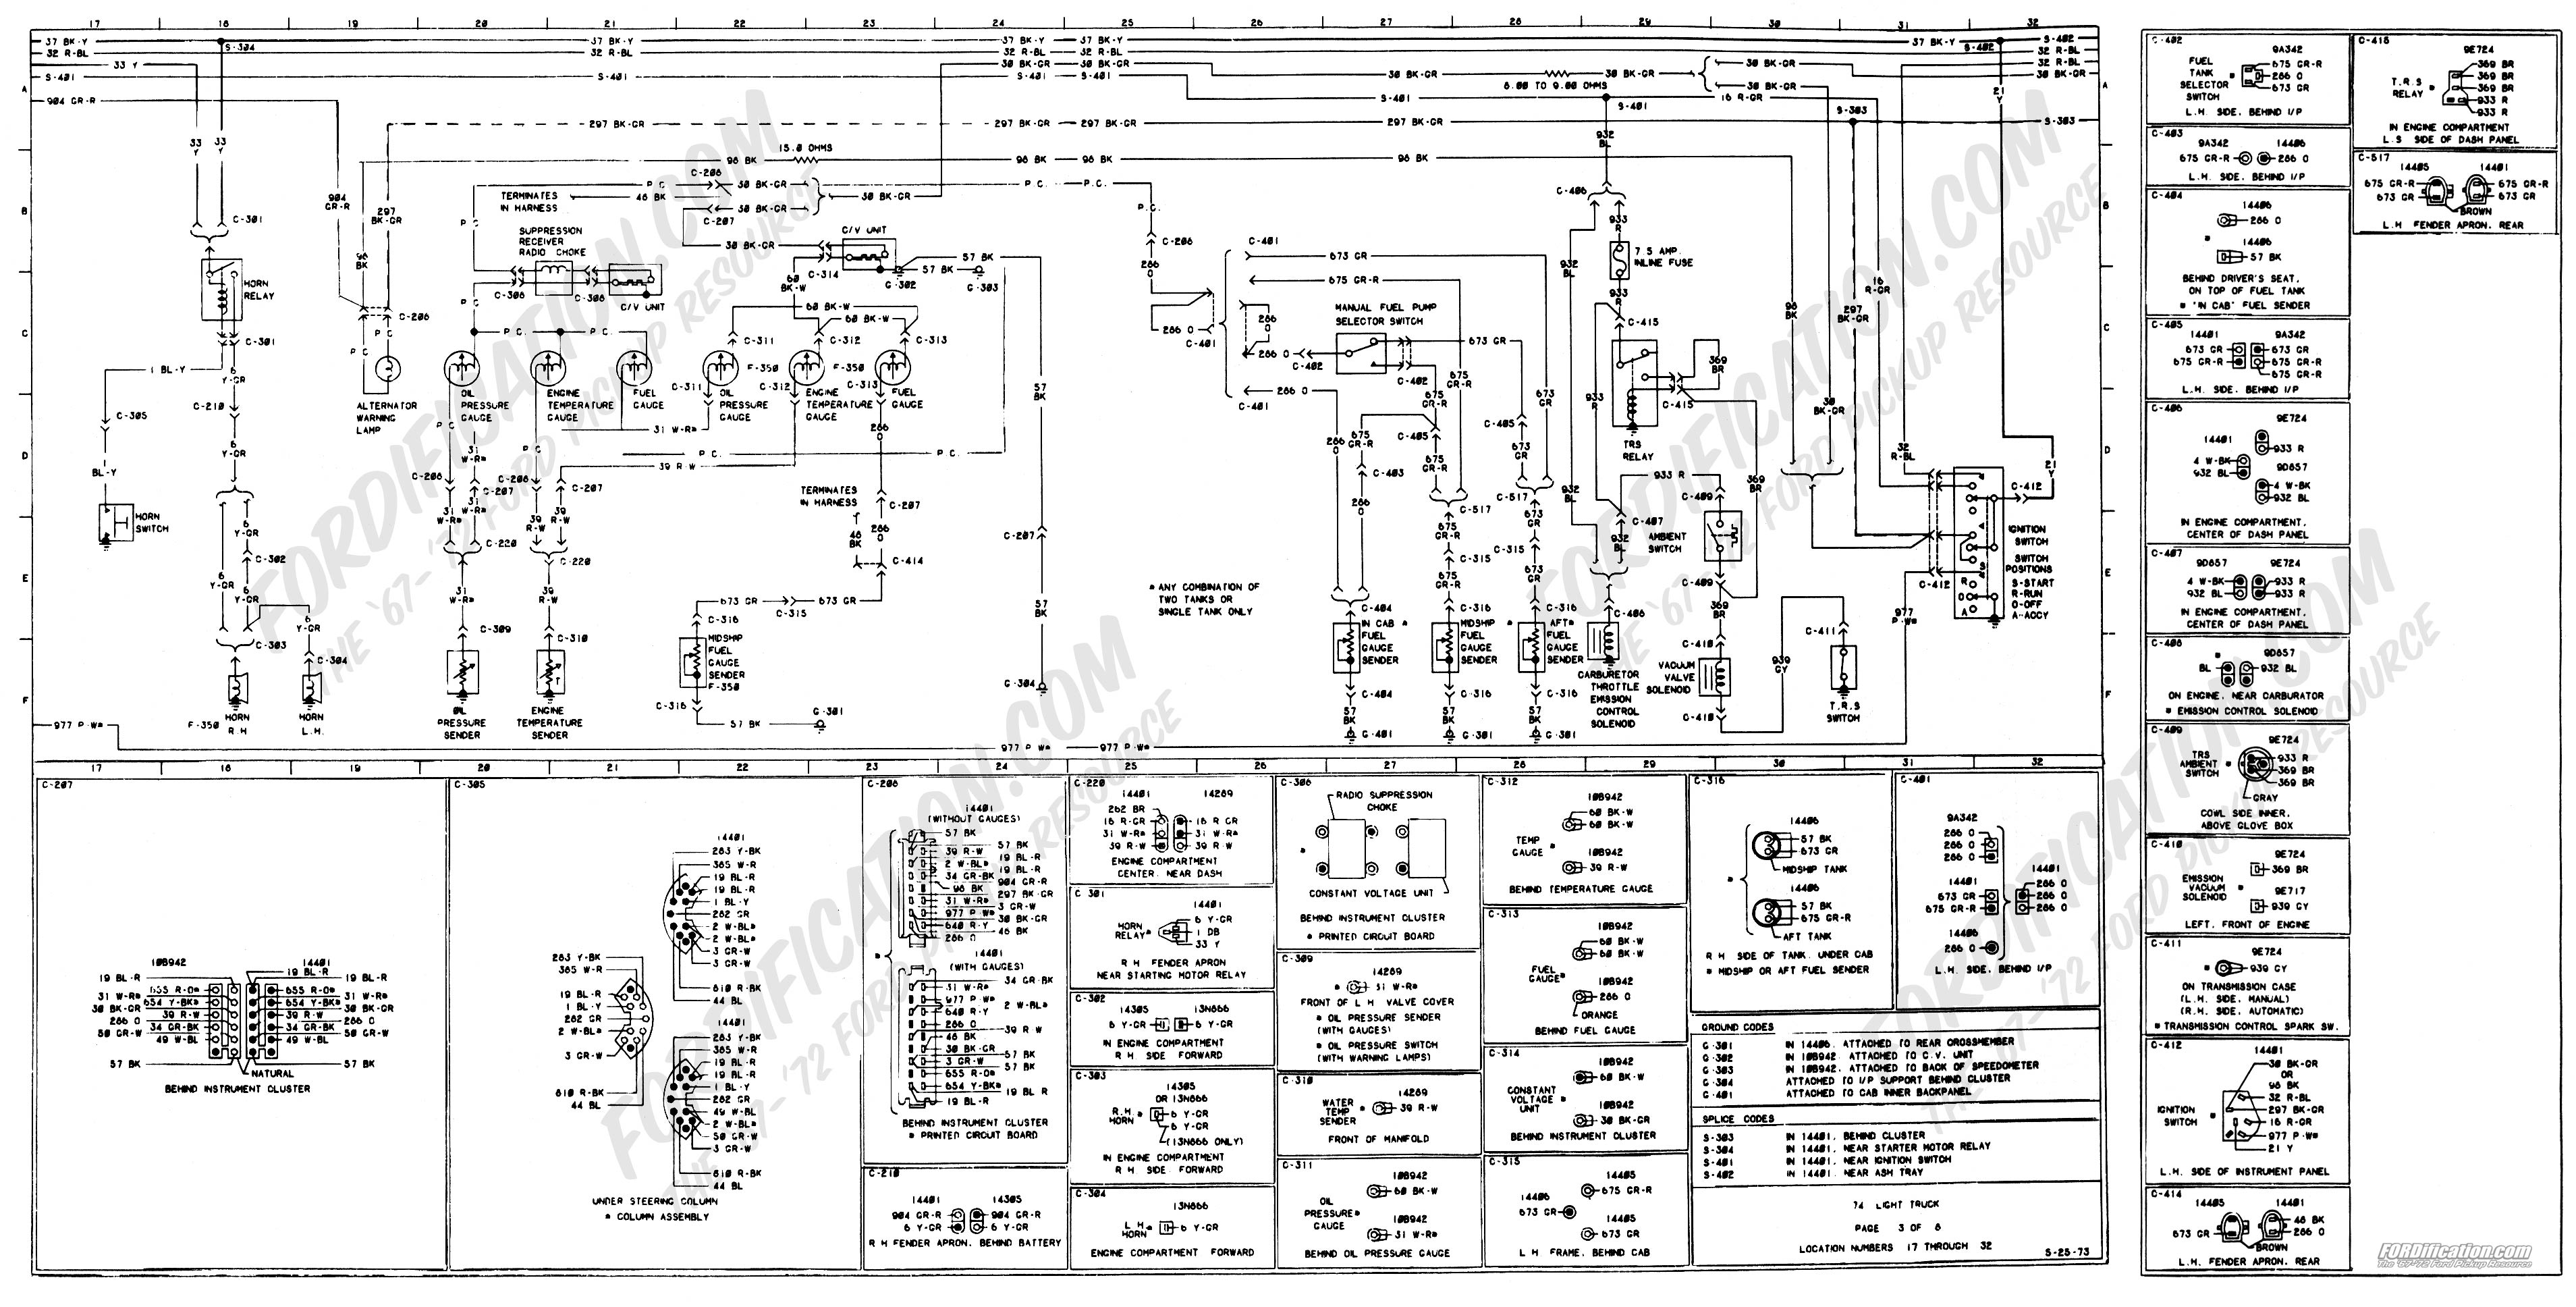 91 Dodge Dakota 5 2 Fuel Pump Wiring Diagram further 1998 Ford Explorer Cooling System Diagram likewise 2014 10 01 archive further 1056182 74 F100 Help With Wiring Diagram further Fuse Box Diagram For 2004 Jeep Grand. on 2004 ford explorer fuse box under dash